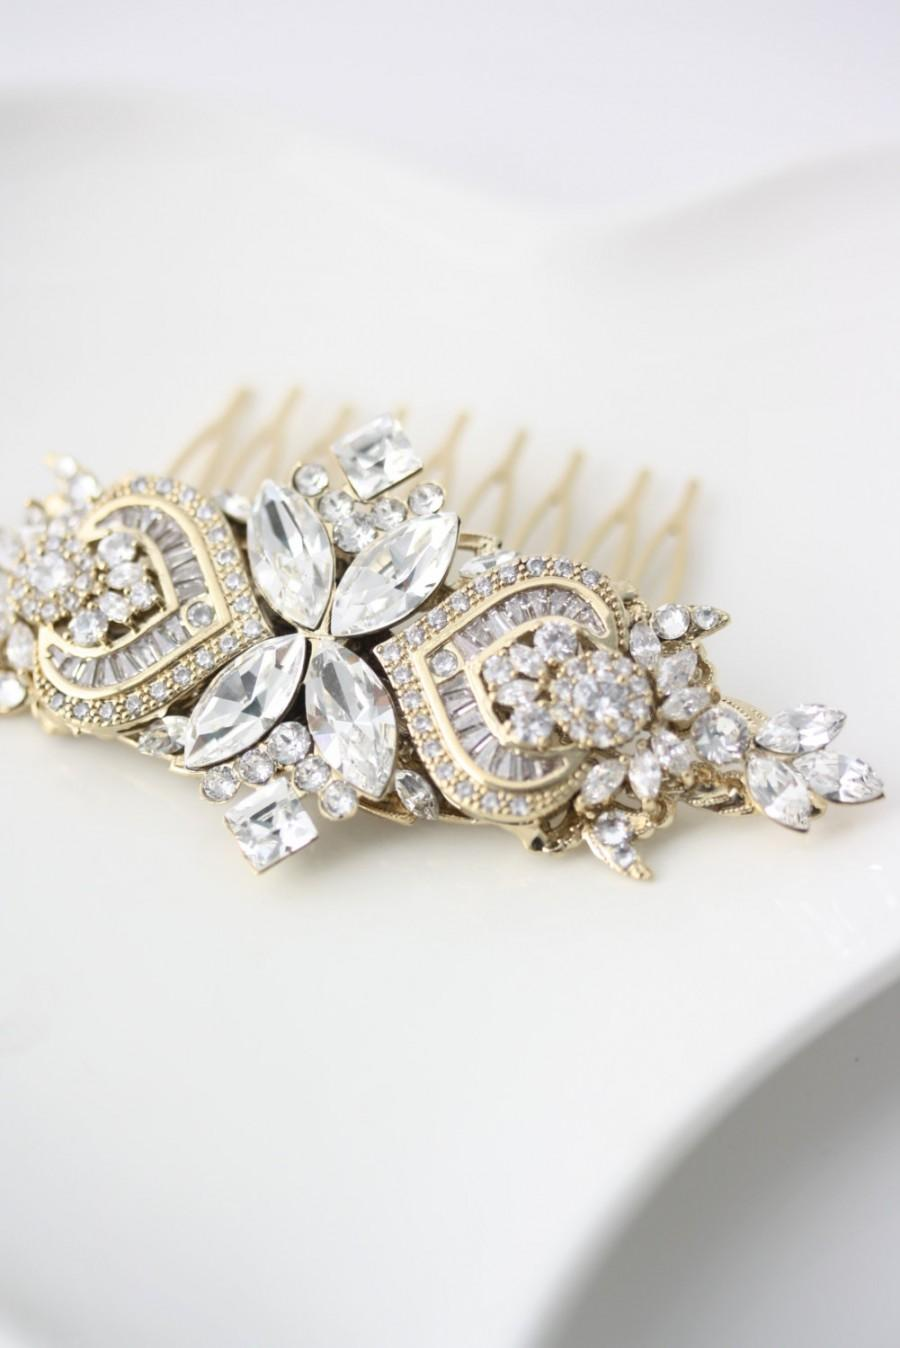 Mariage - Bridal Comb Rhinestone Headpiece Gold Comb Crystal Hair Comb Wedding Hair Accessories Swarovski Veil Comb EVIE